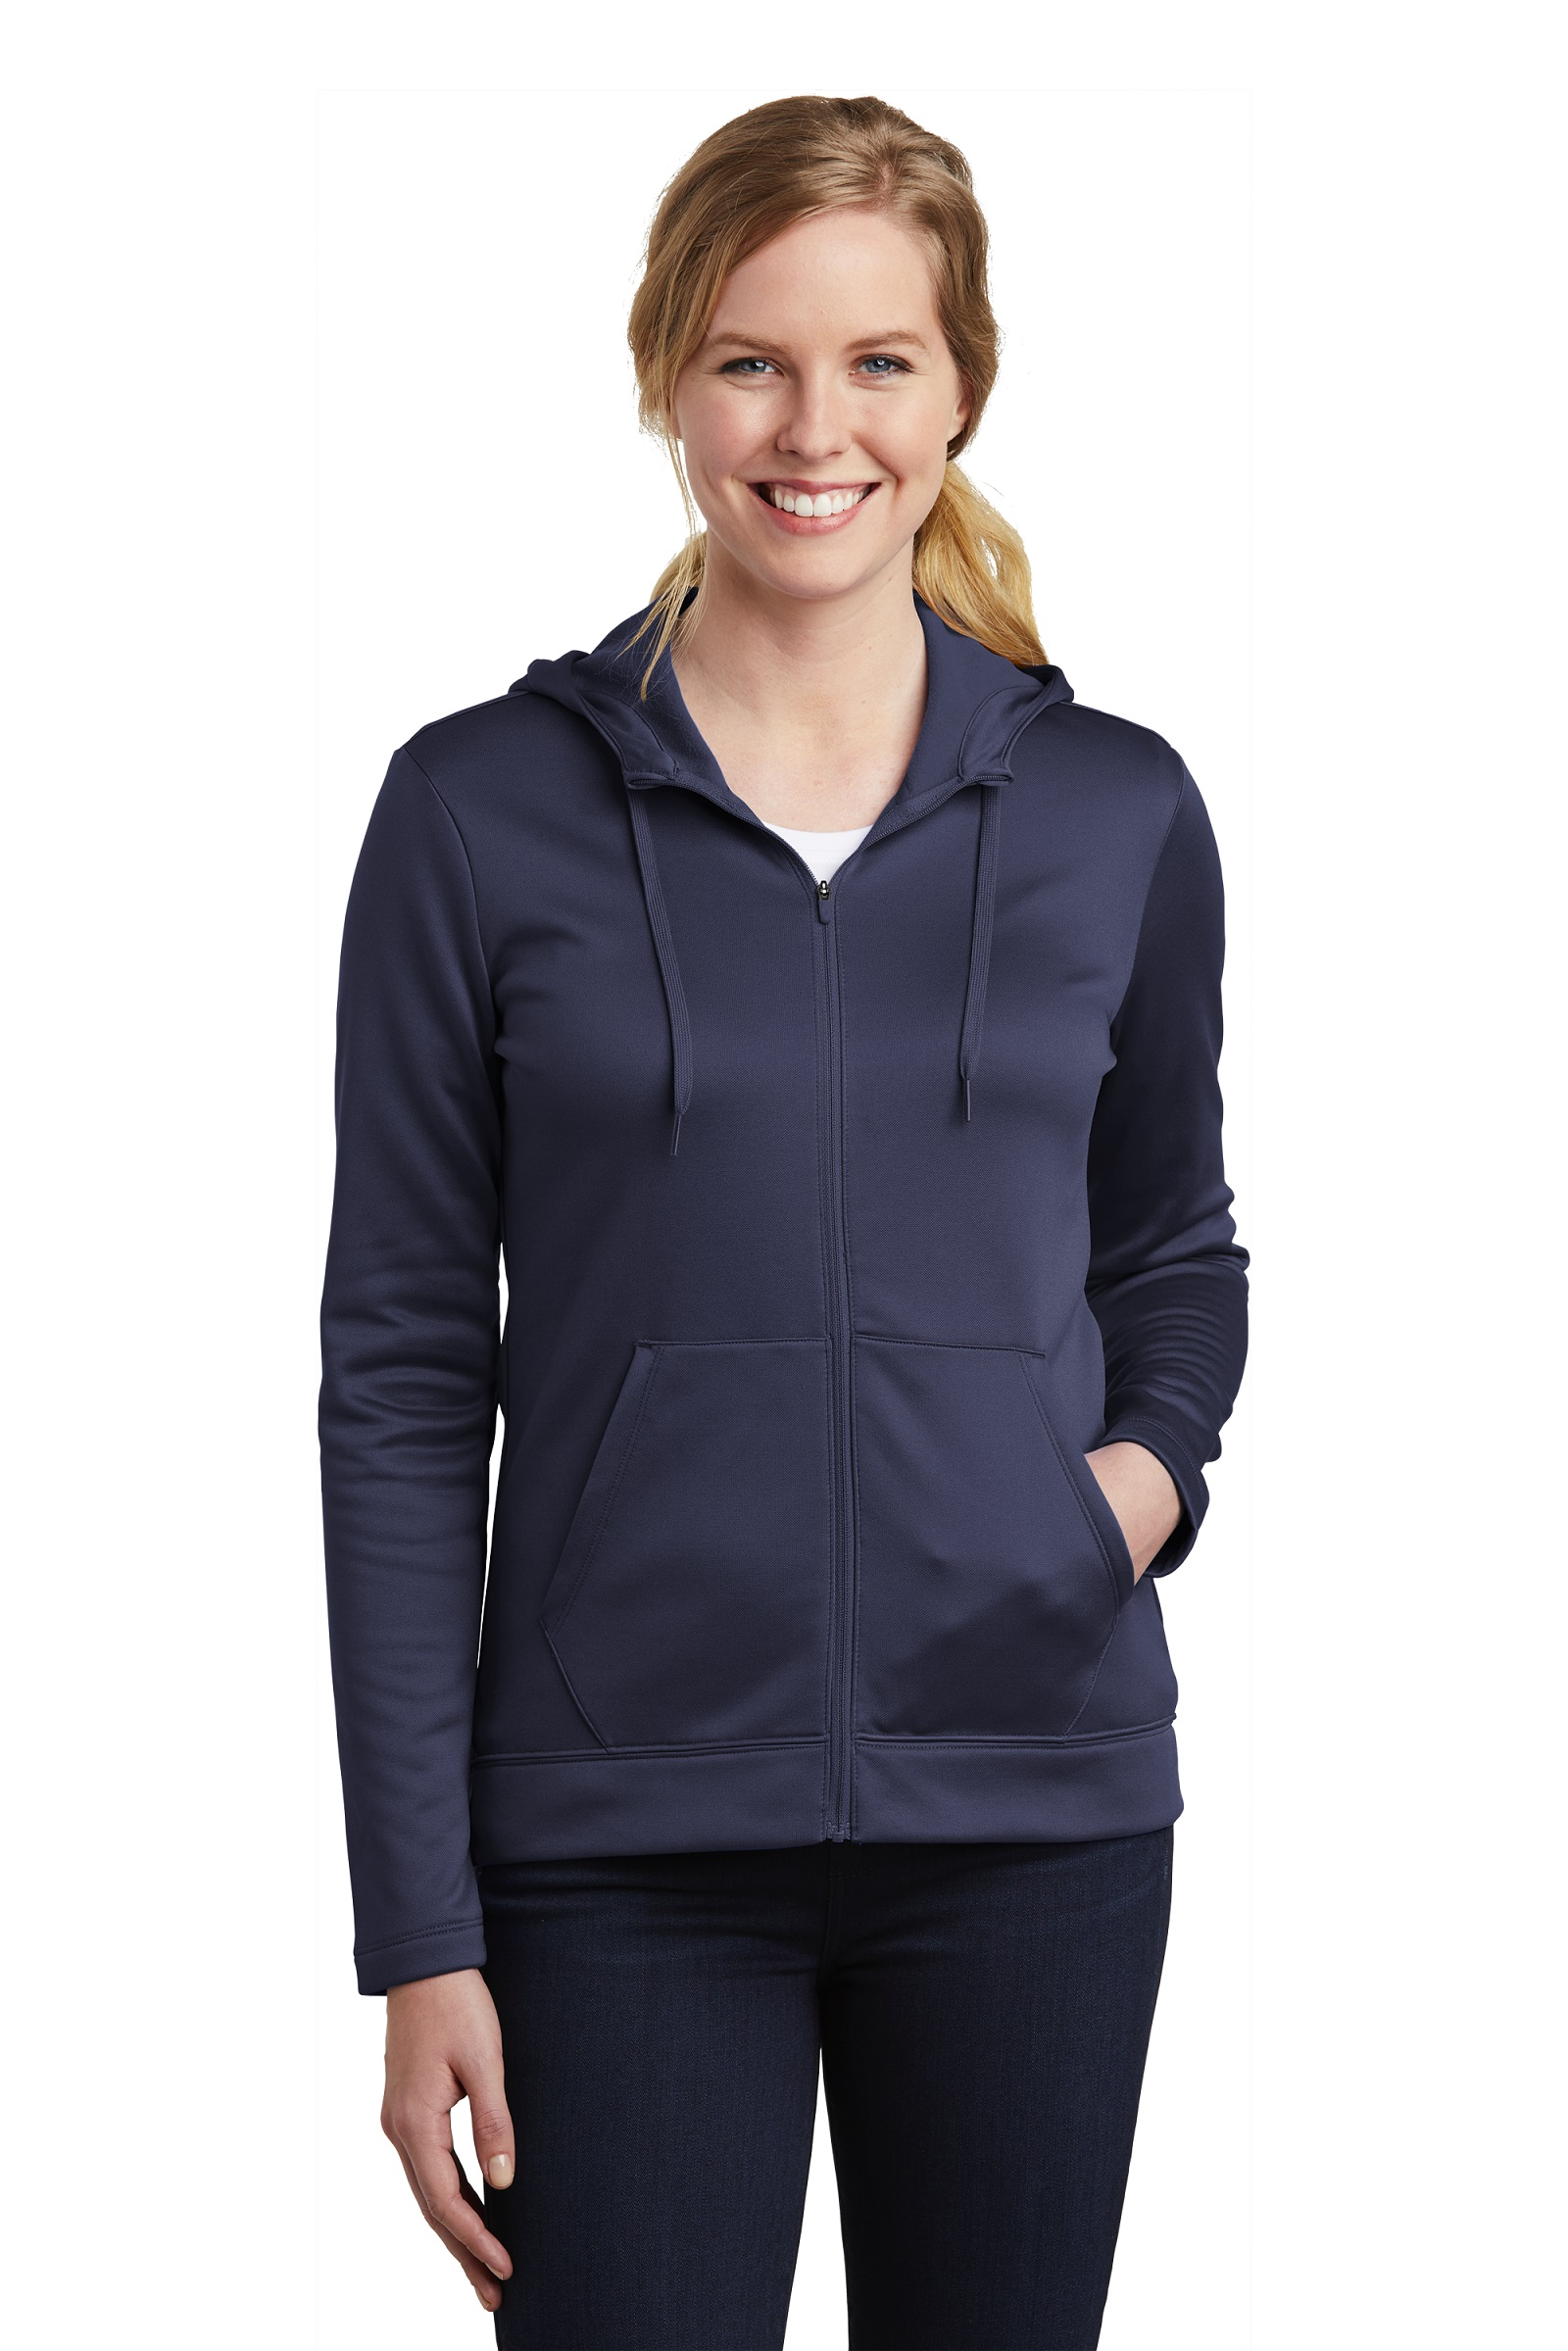 Nike Embroidered Women's Therma-FIT Full-Zip Fleece Hoodie